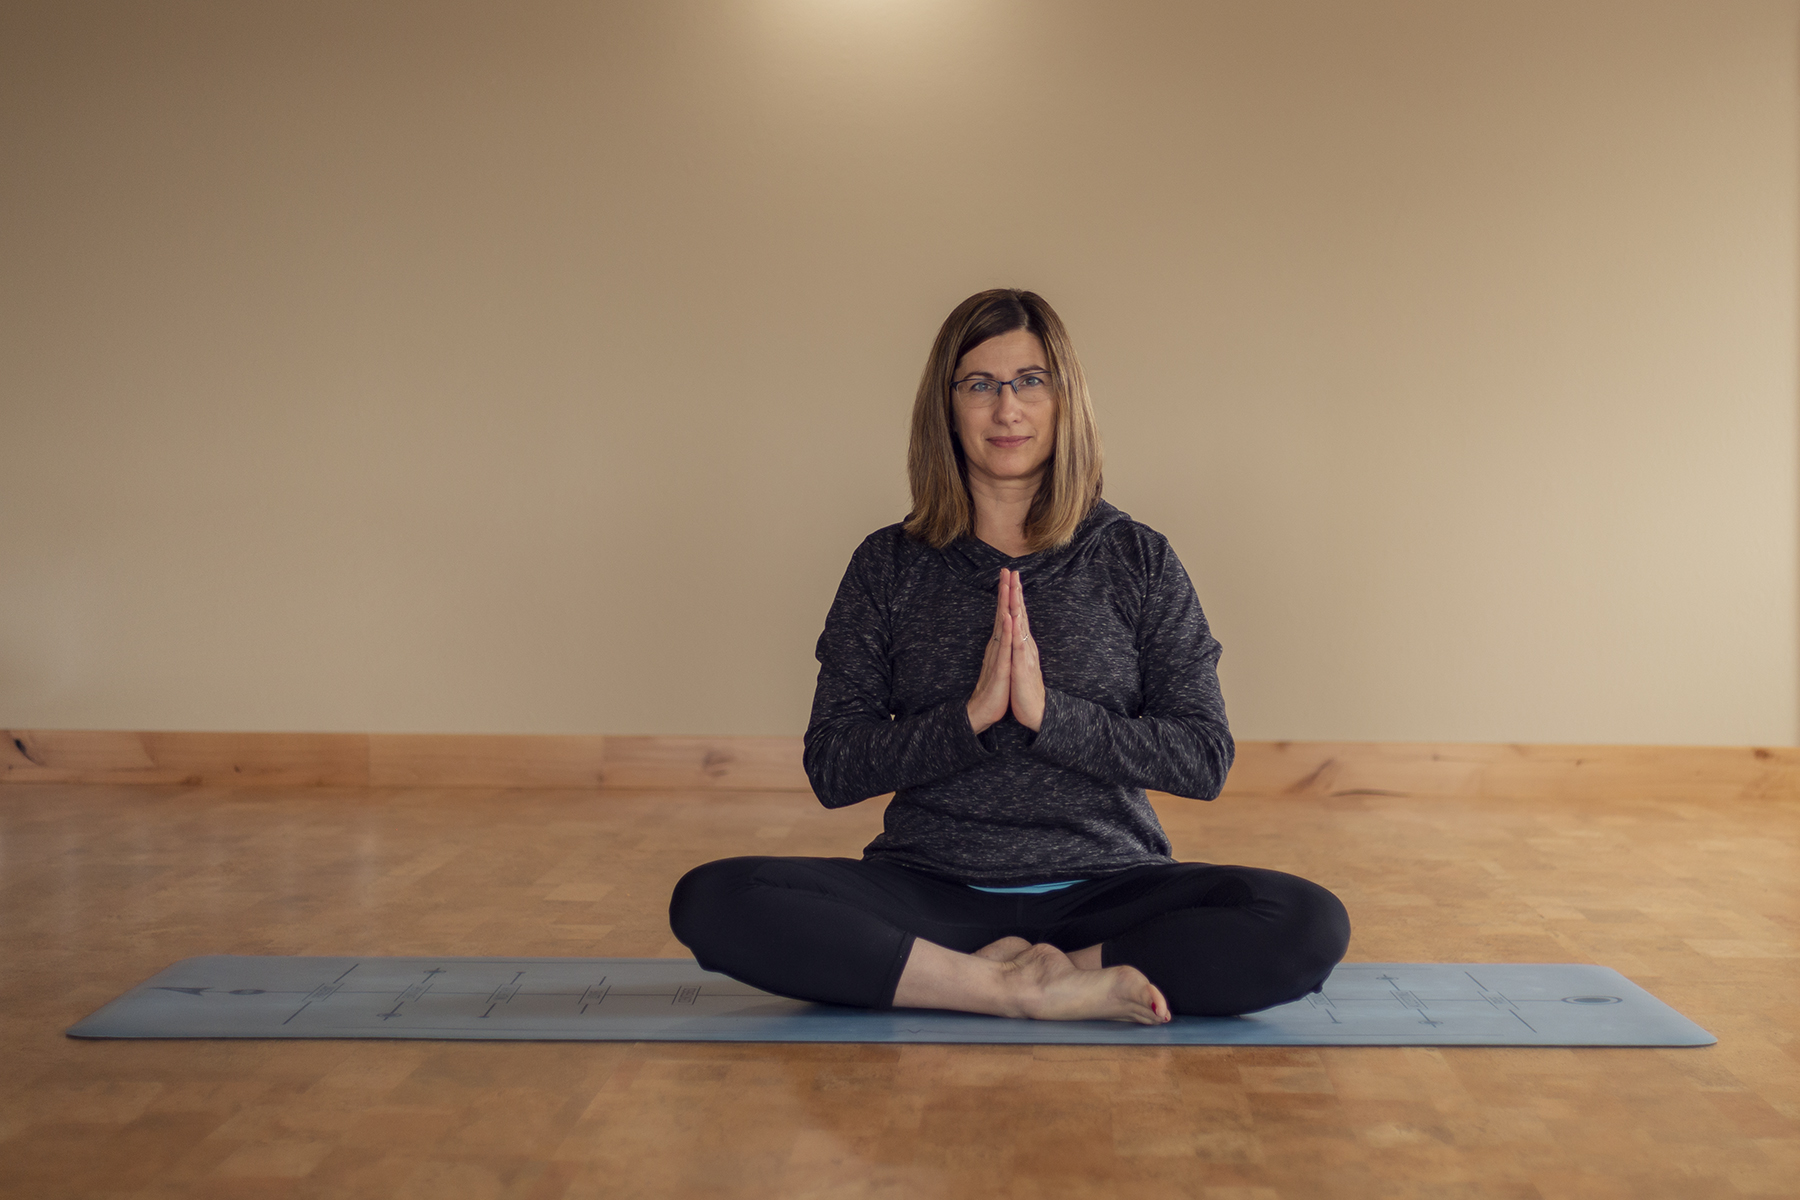 Melissa in a yoga pose, photo credit noxbox photography